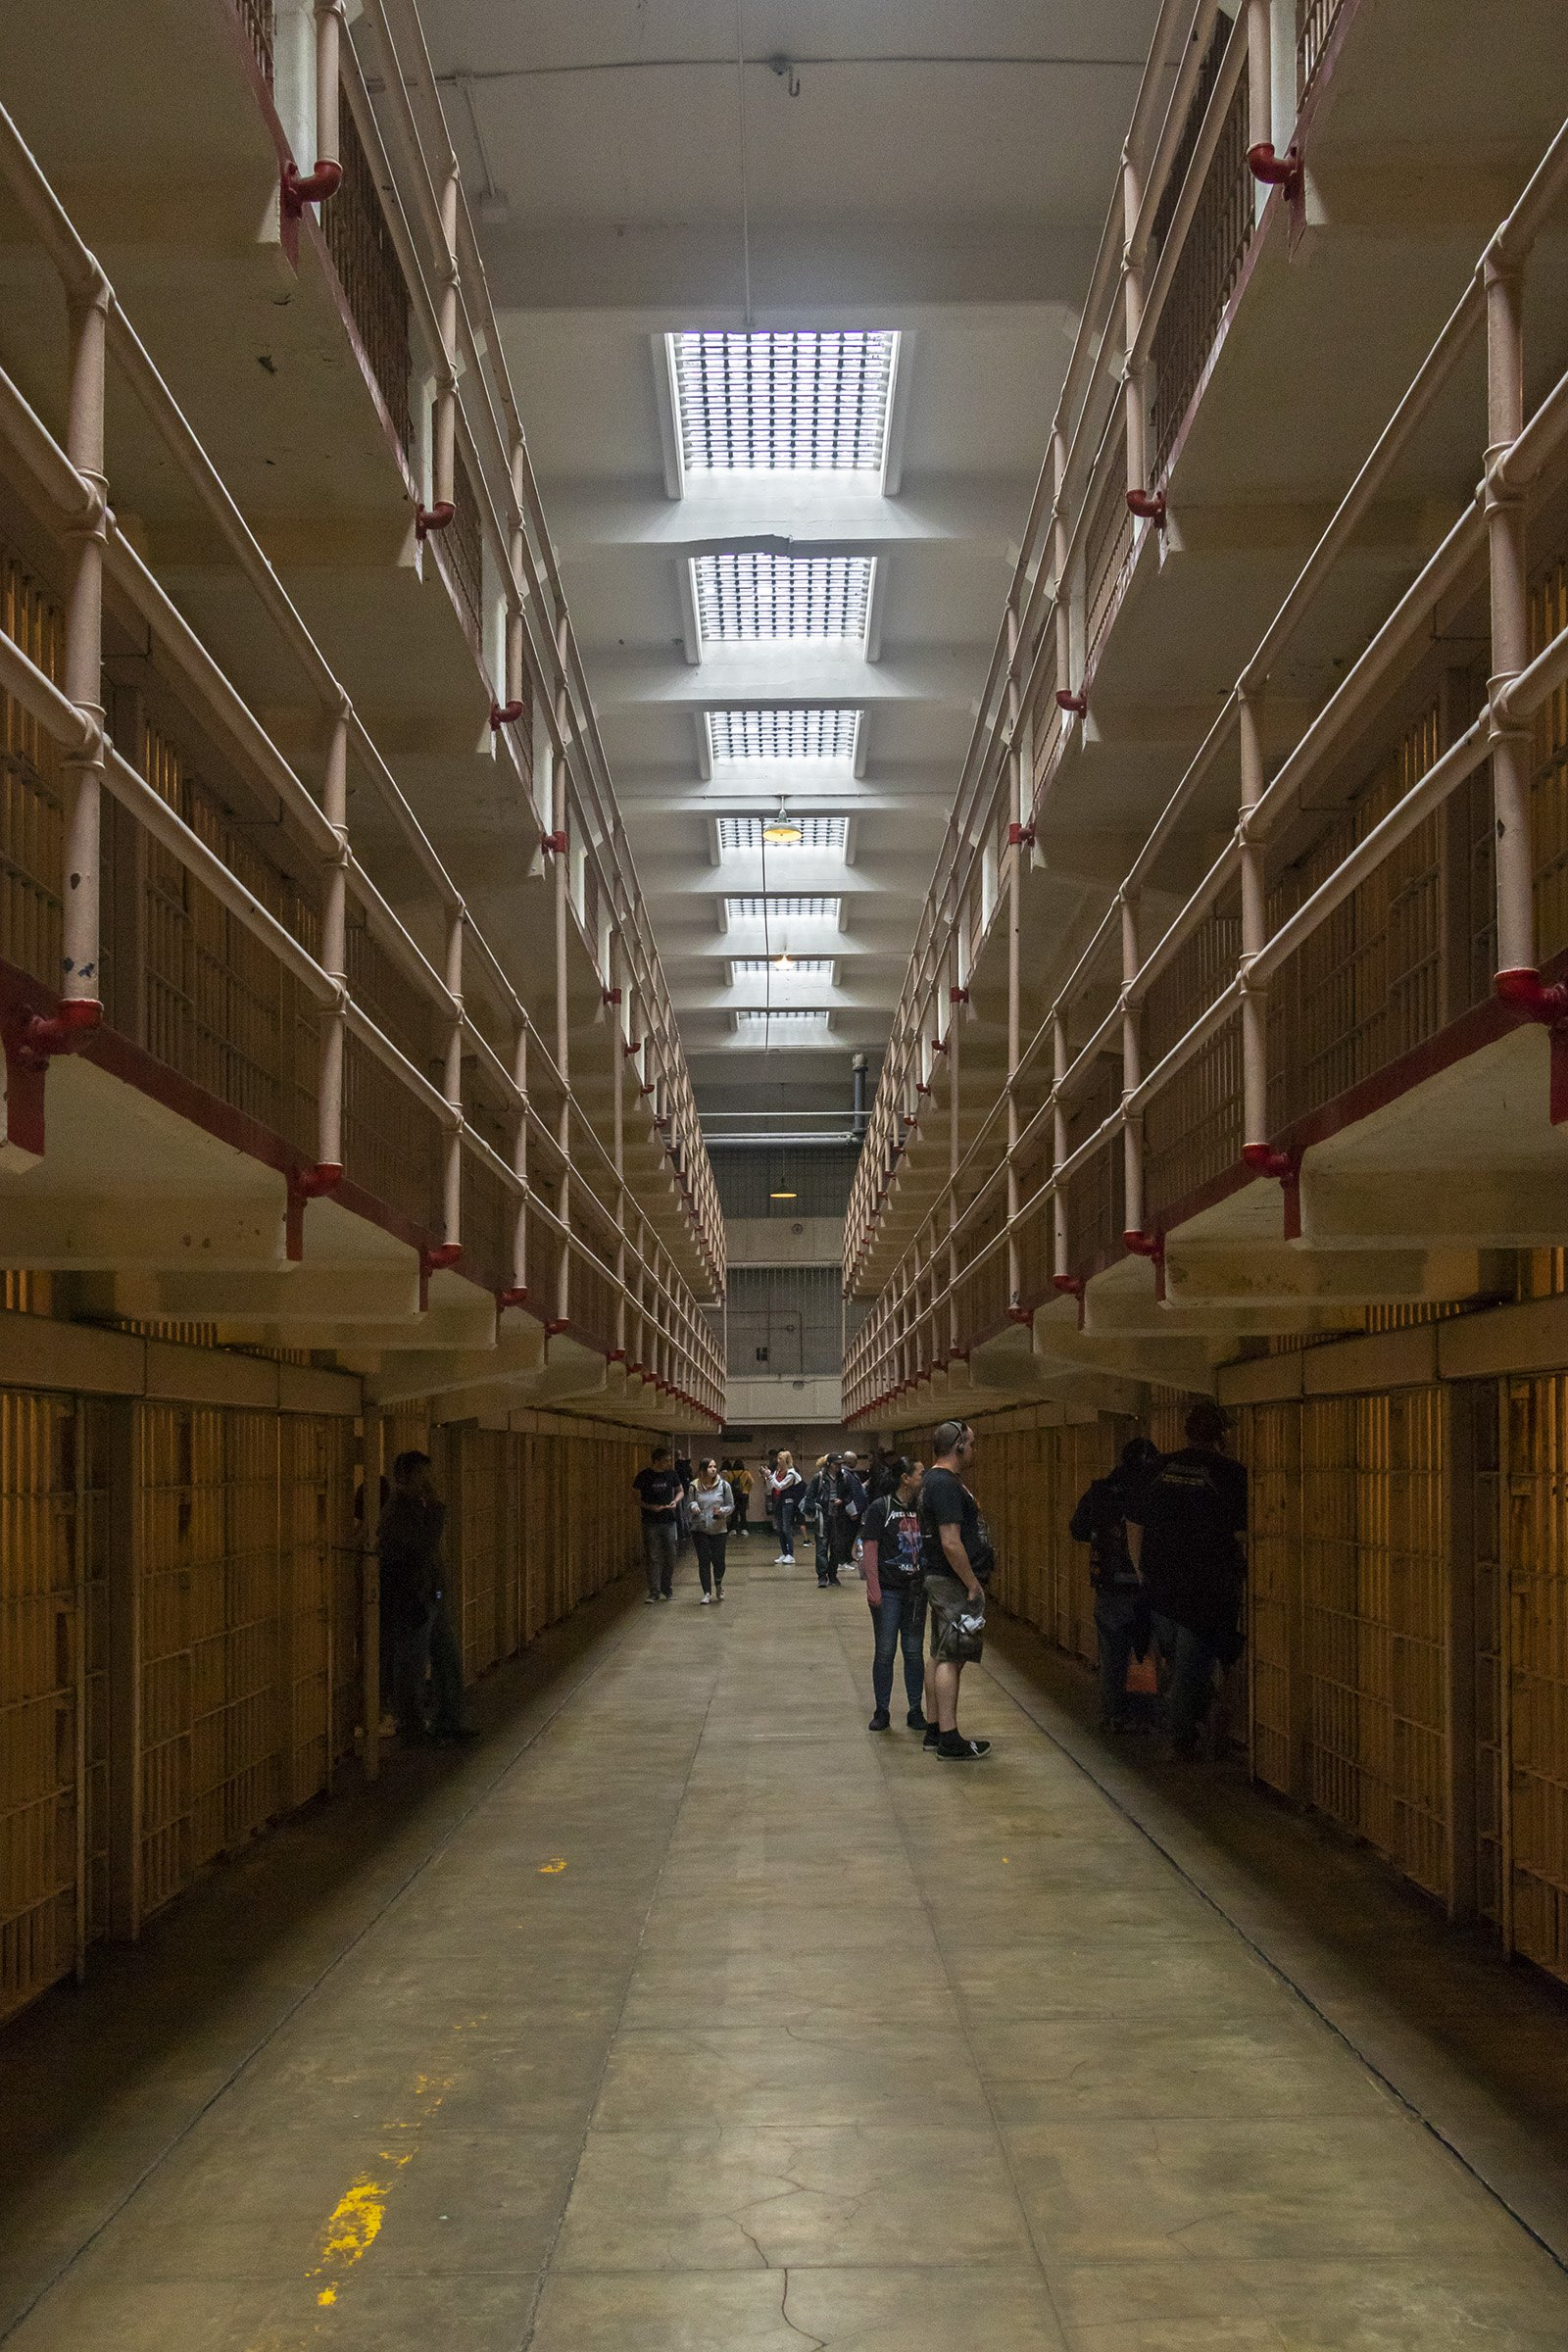 Inside Alcatraz prison cell house